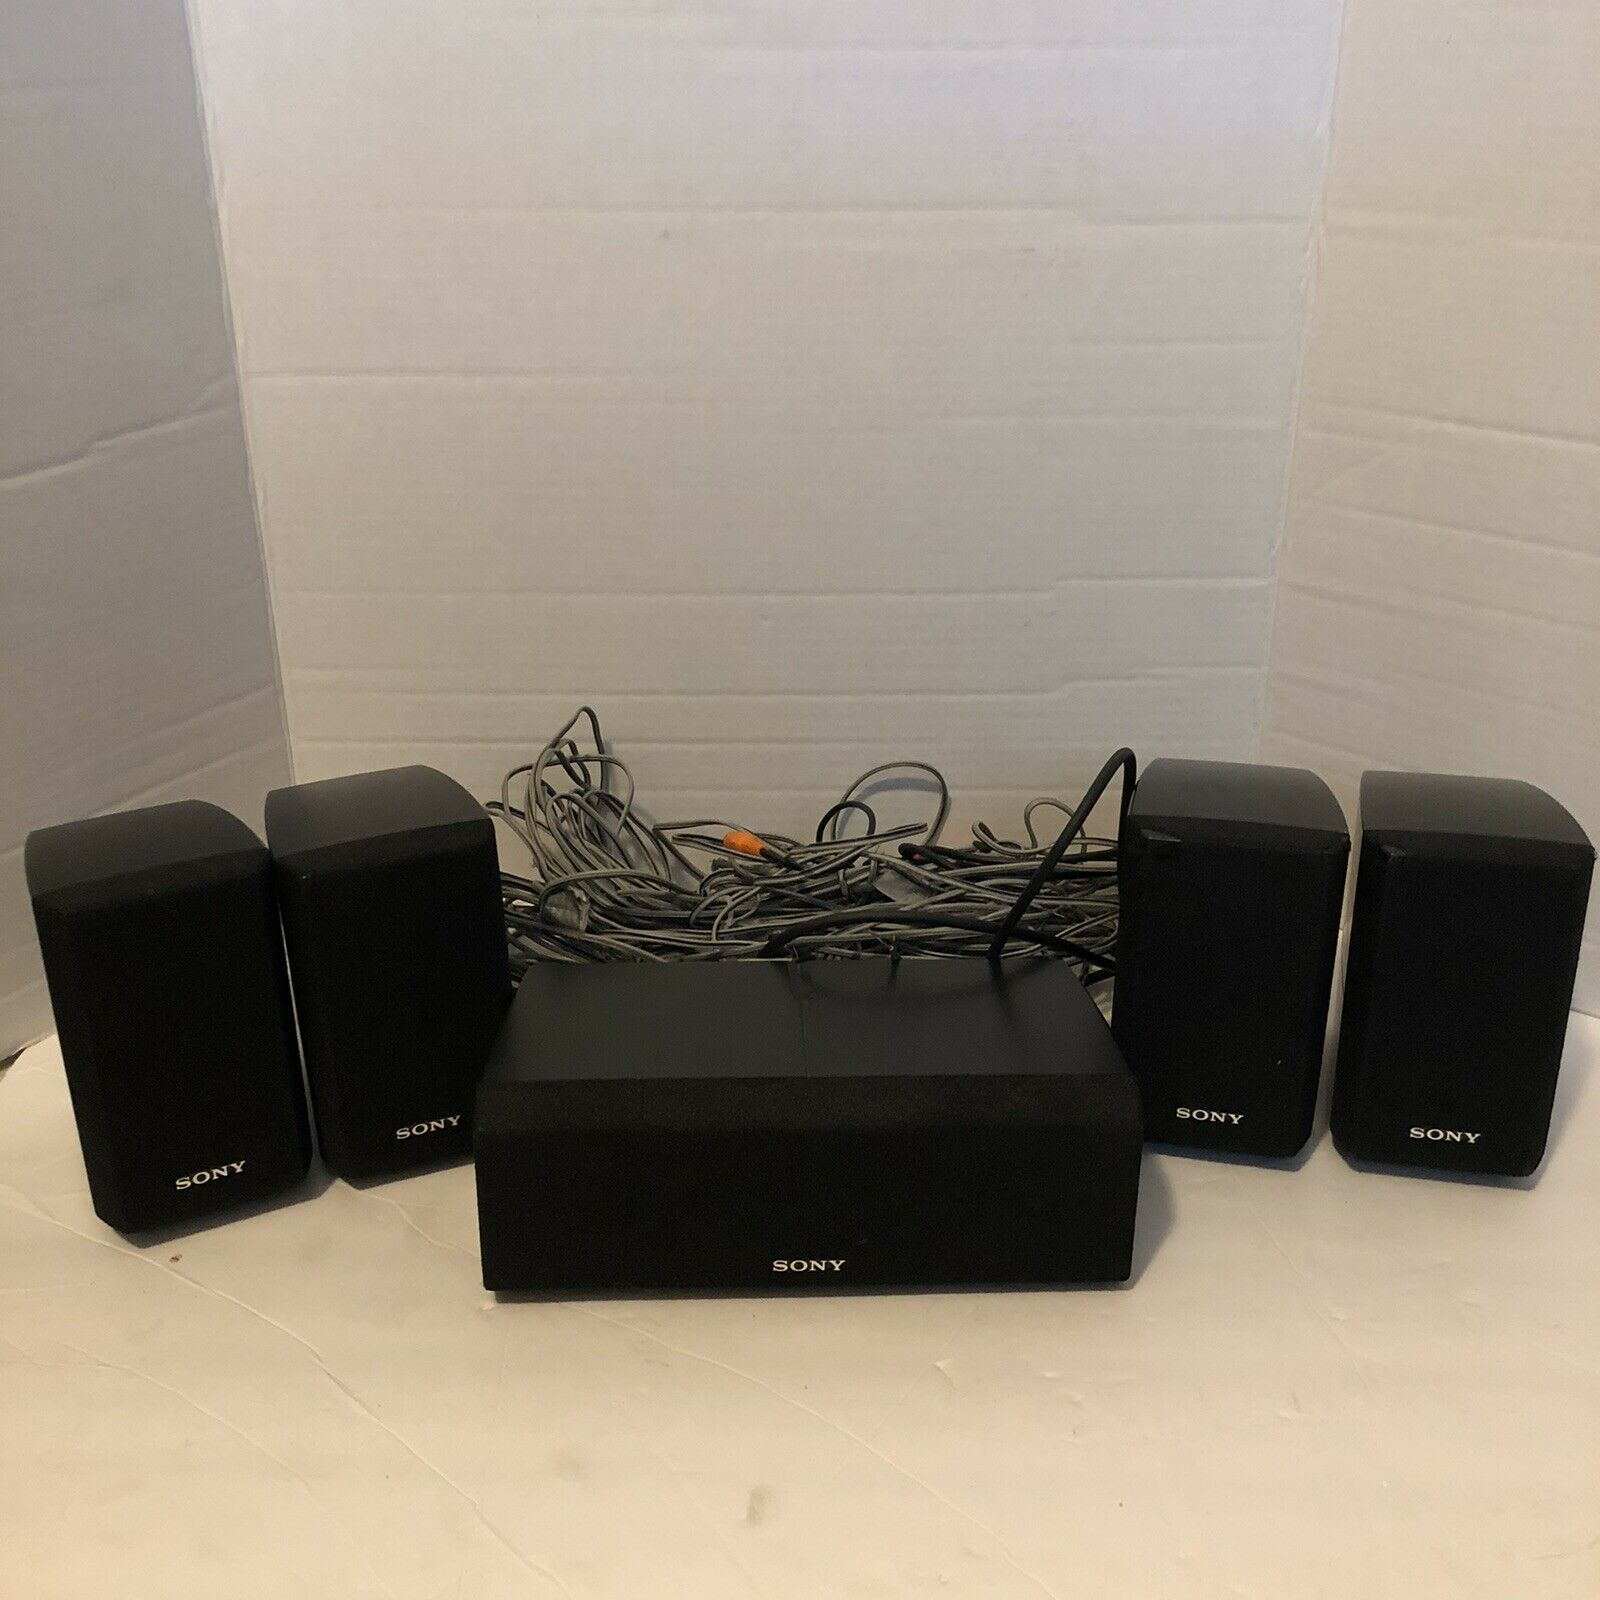 Complete Set of SONY Surround Sound Speakers Front Rear SS-MSP2, Center SS-CNP2. Buy it now for 75.00